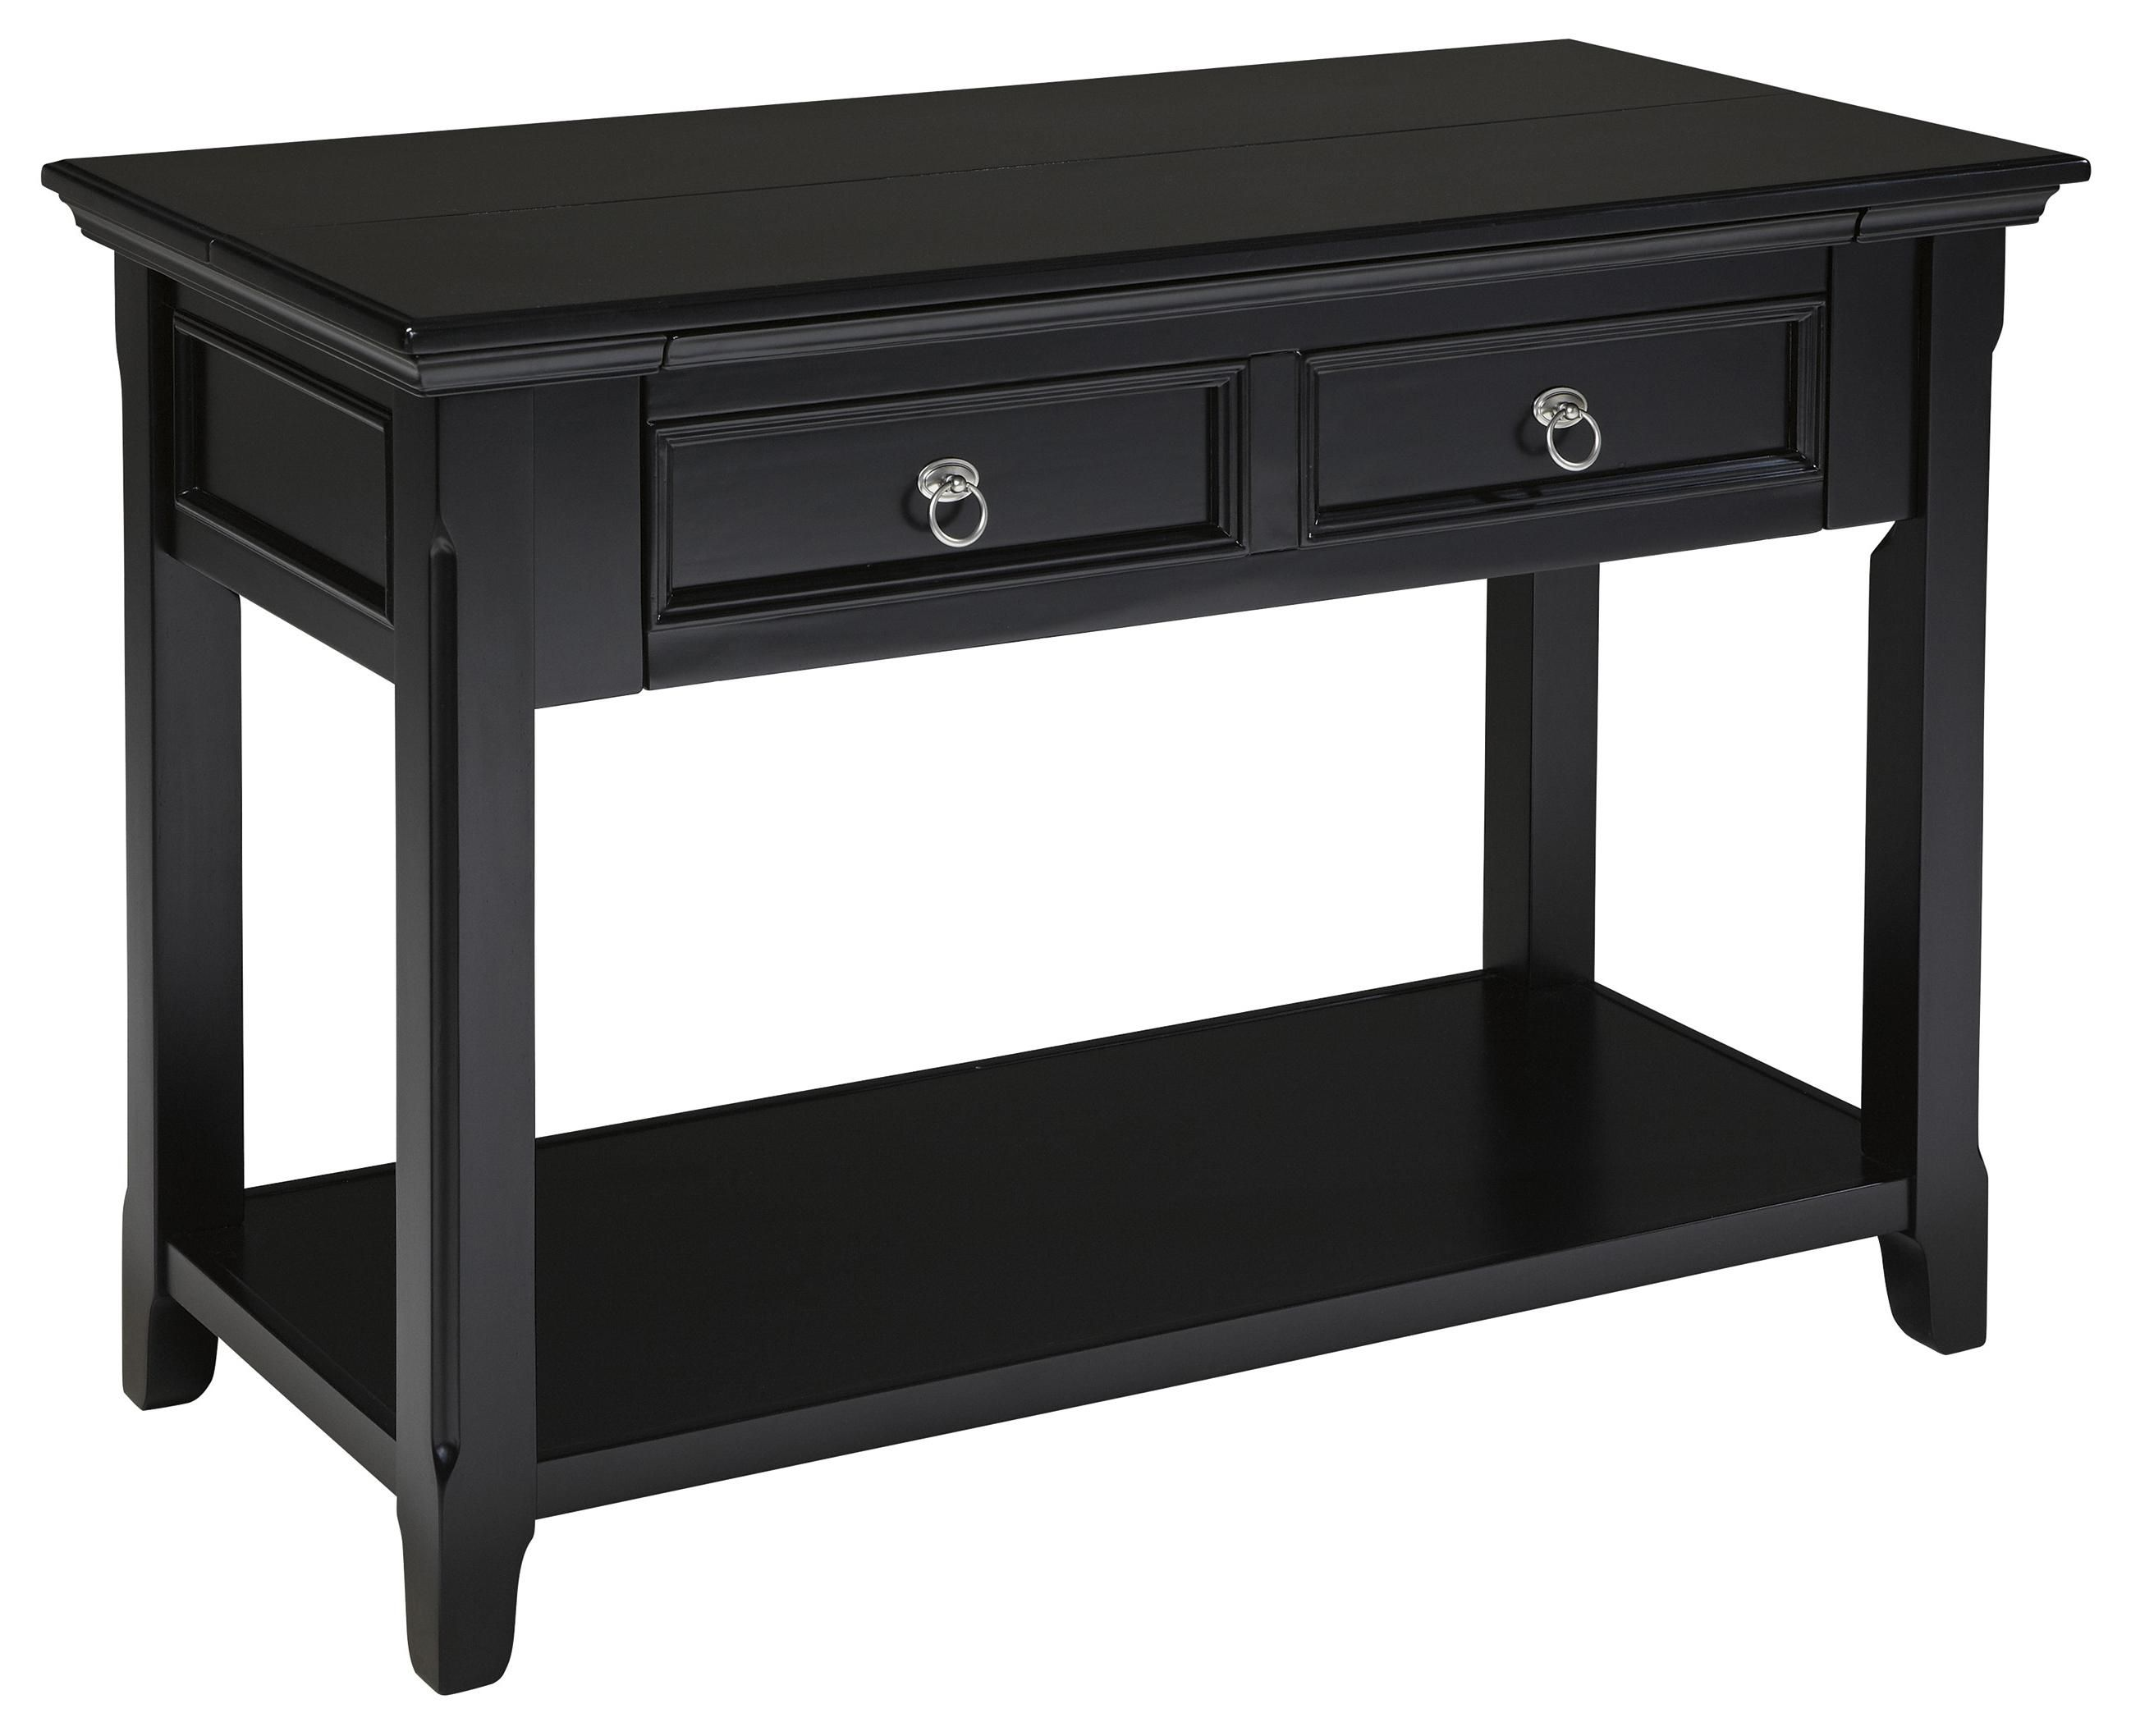 Awe Inspiring Sofa Table Desk Greensburg By Signature Design By Ashley Interior Design Ideas Inesswwsoteloinfo